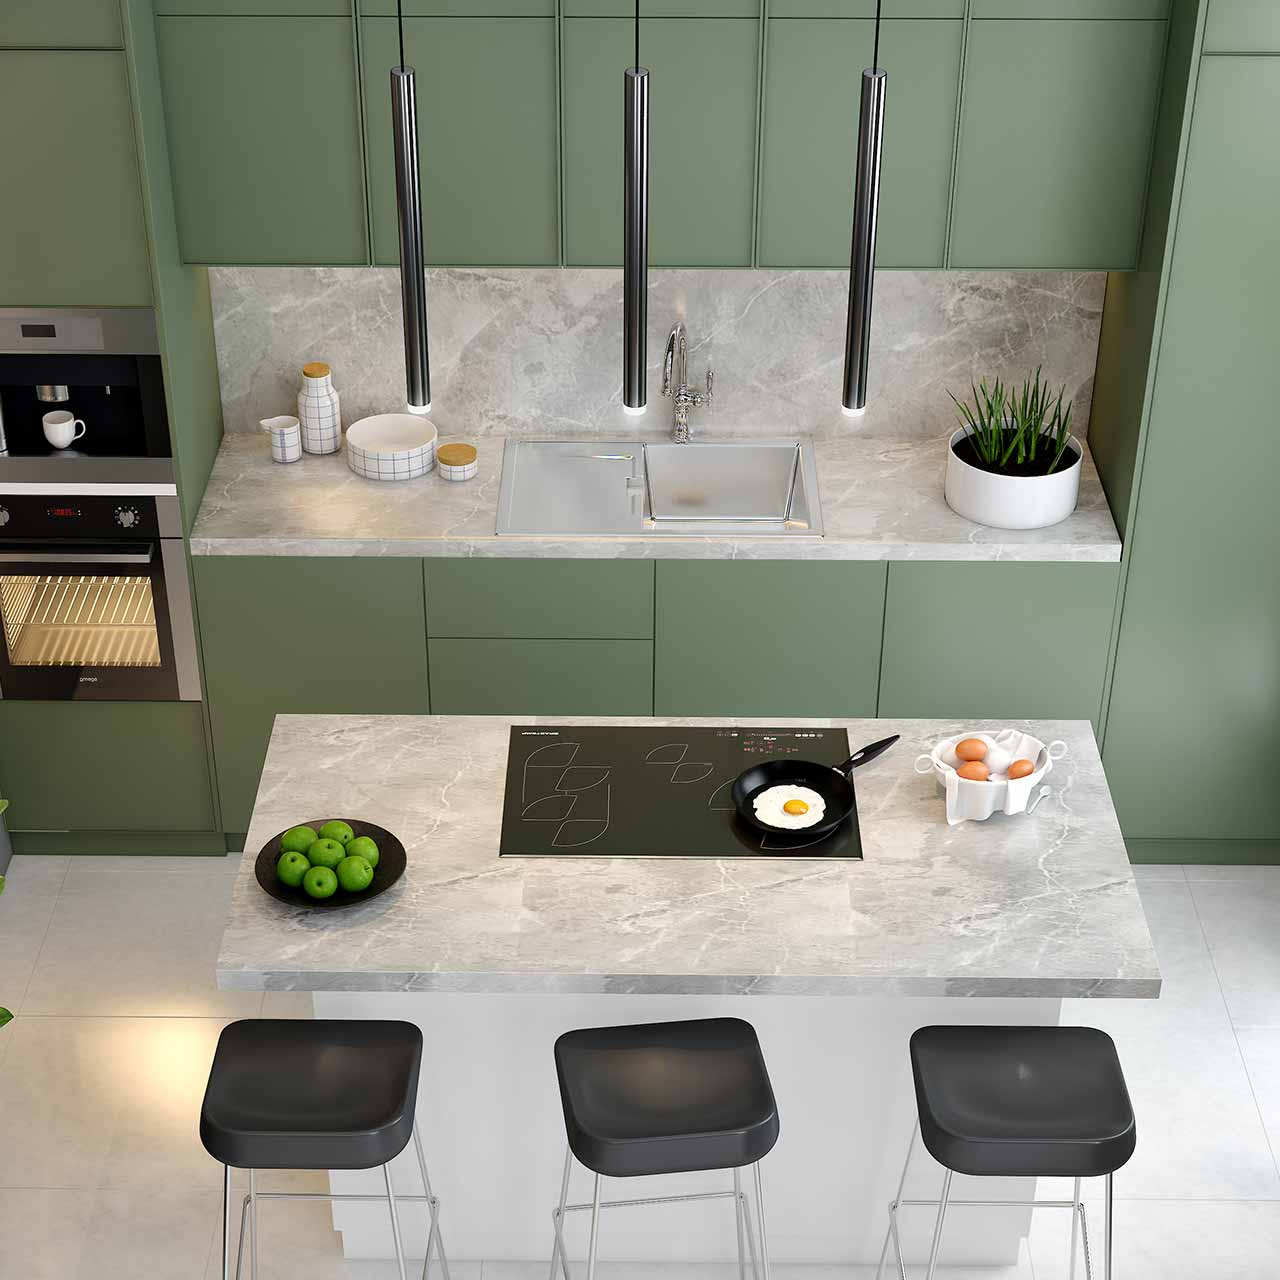 Kitchen Island for Fun And Food